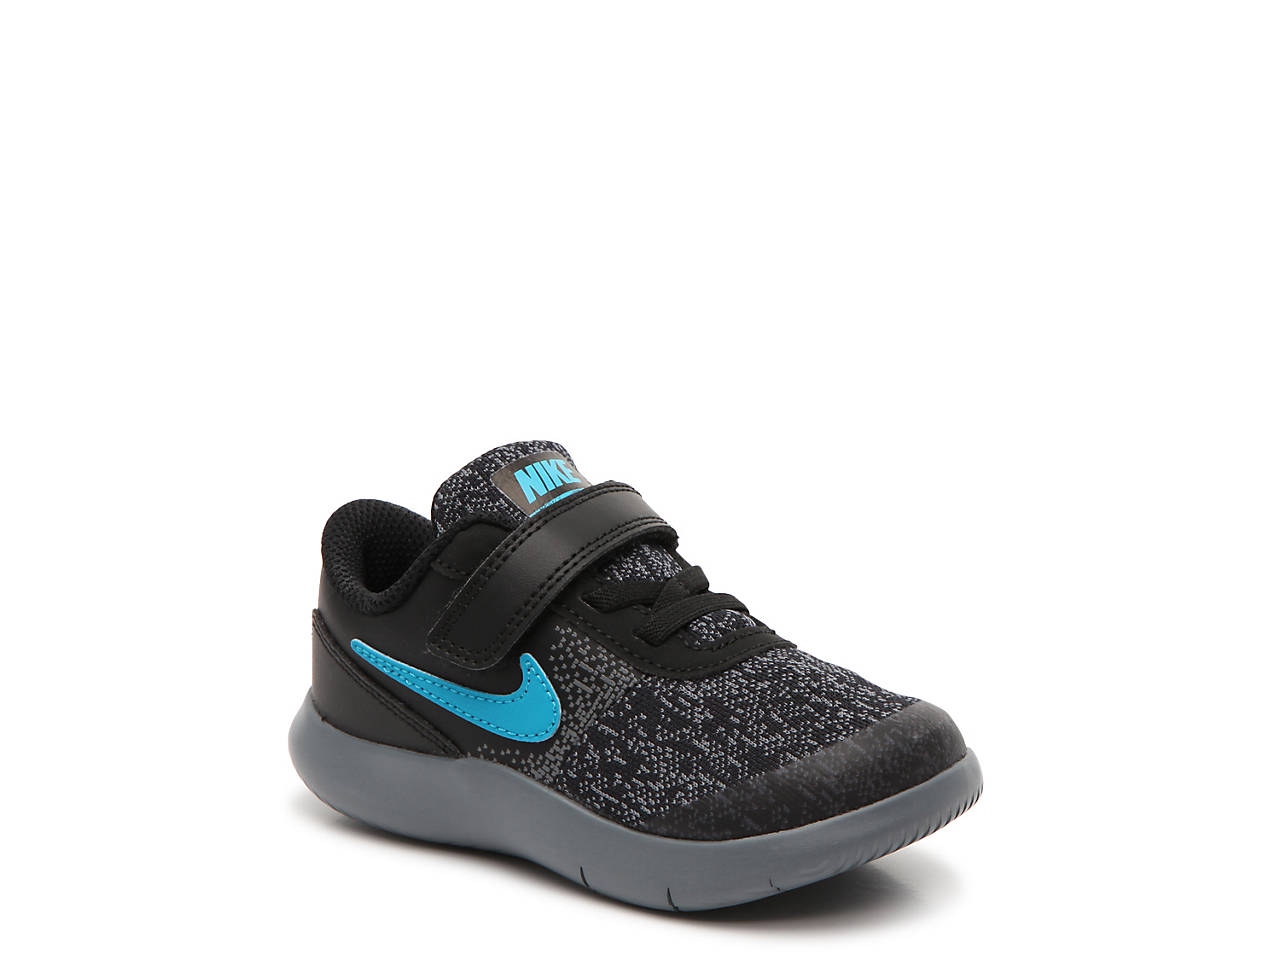 Nike Flex Contact Infant & Toddler Running Shoe Kids Shoes ...